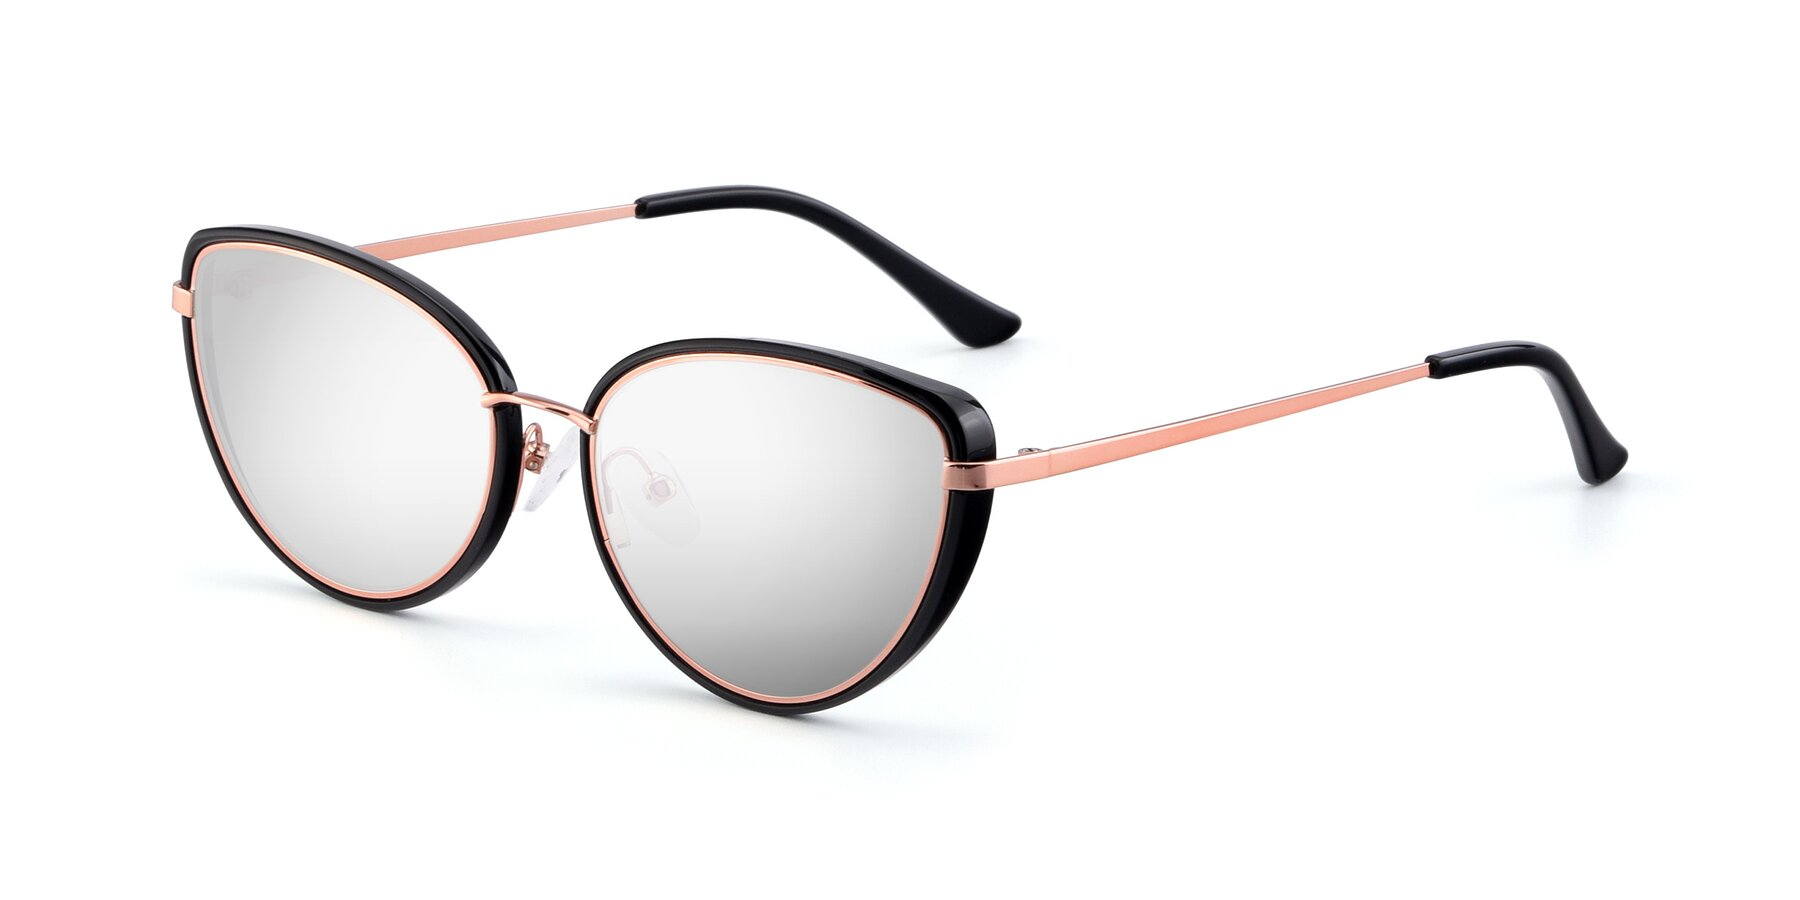 Angle of 17706 in Black-Rose Gold with Silver Mirrored Lenses